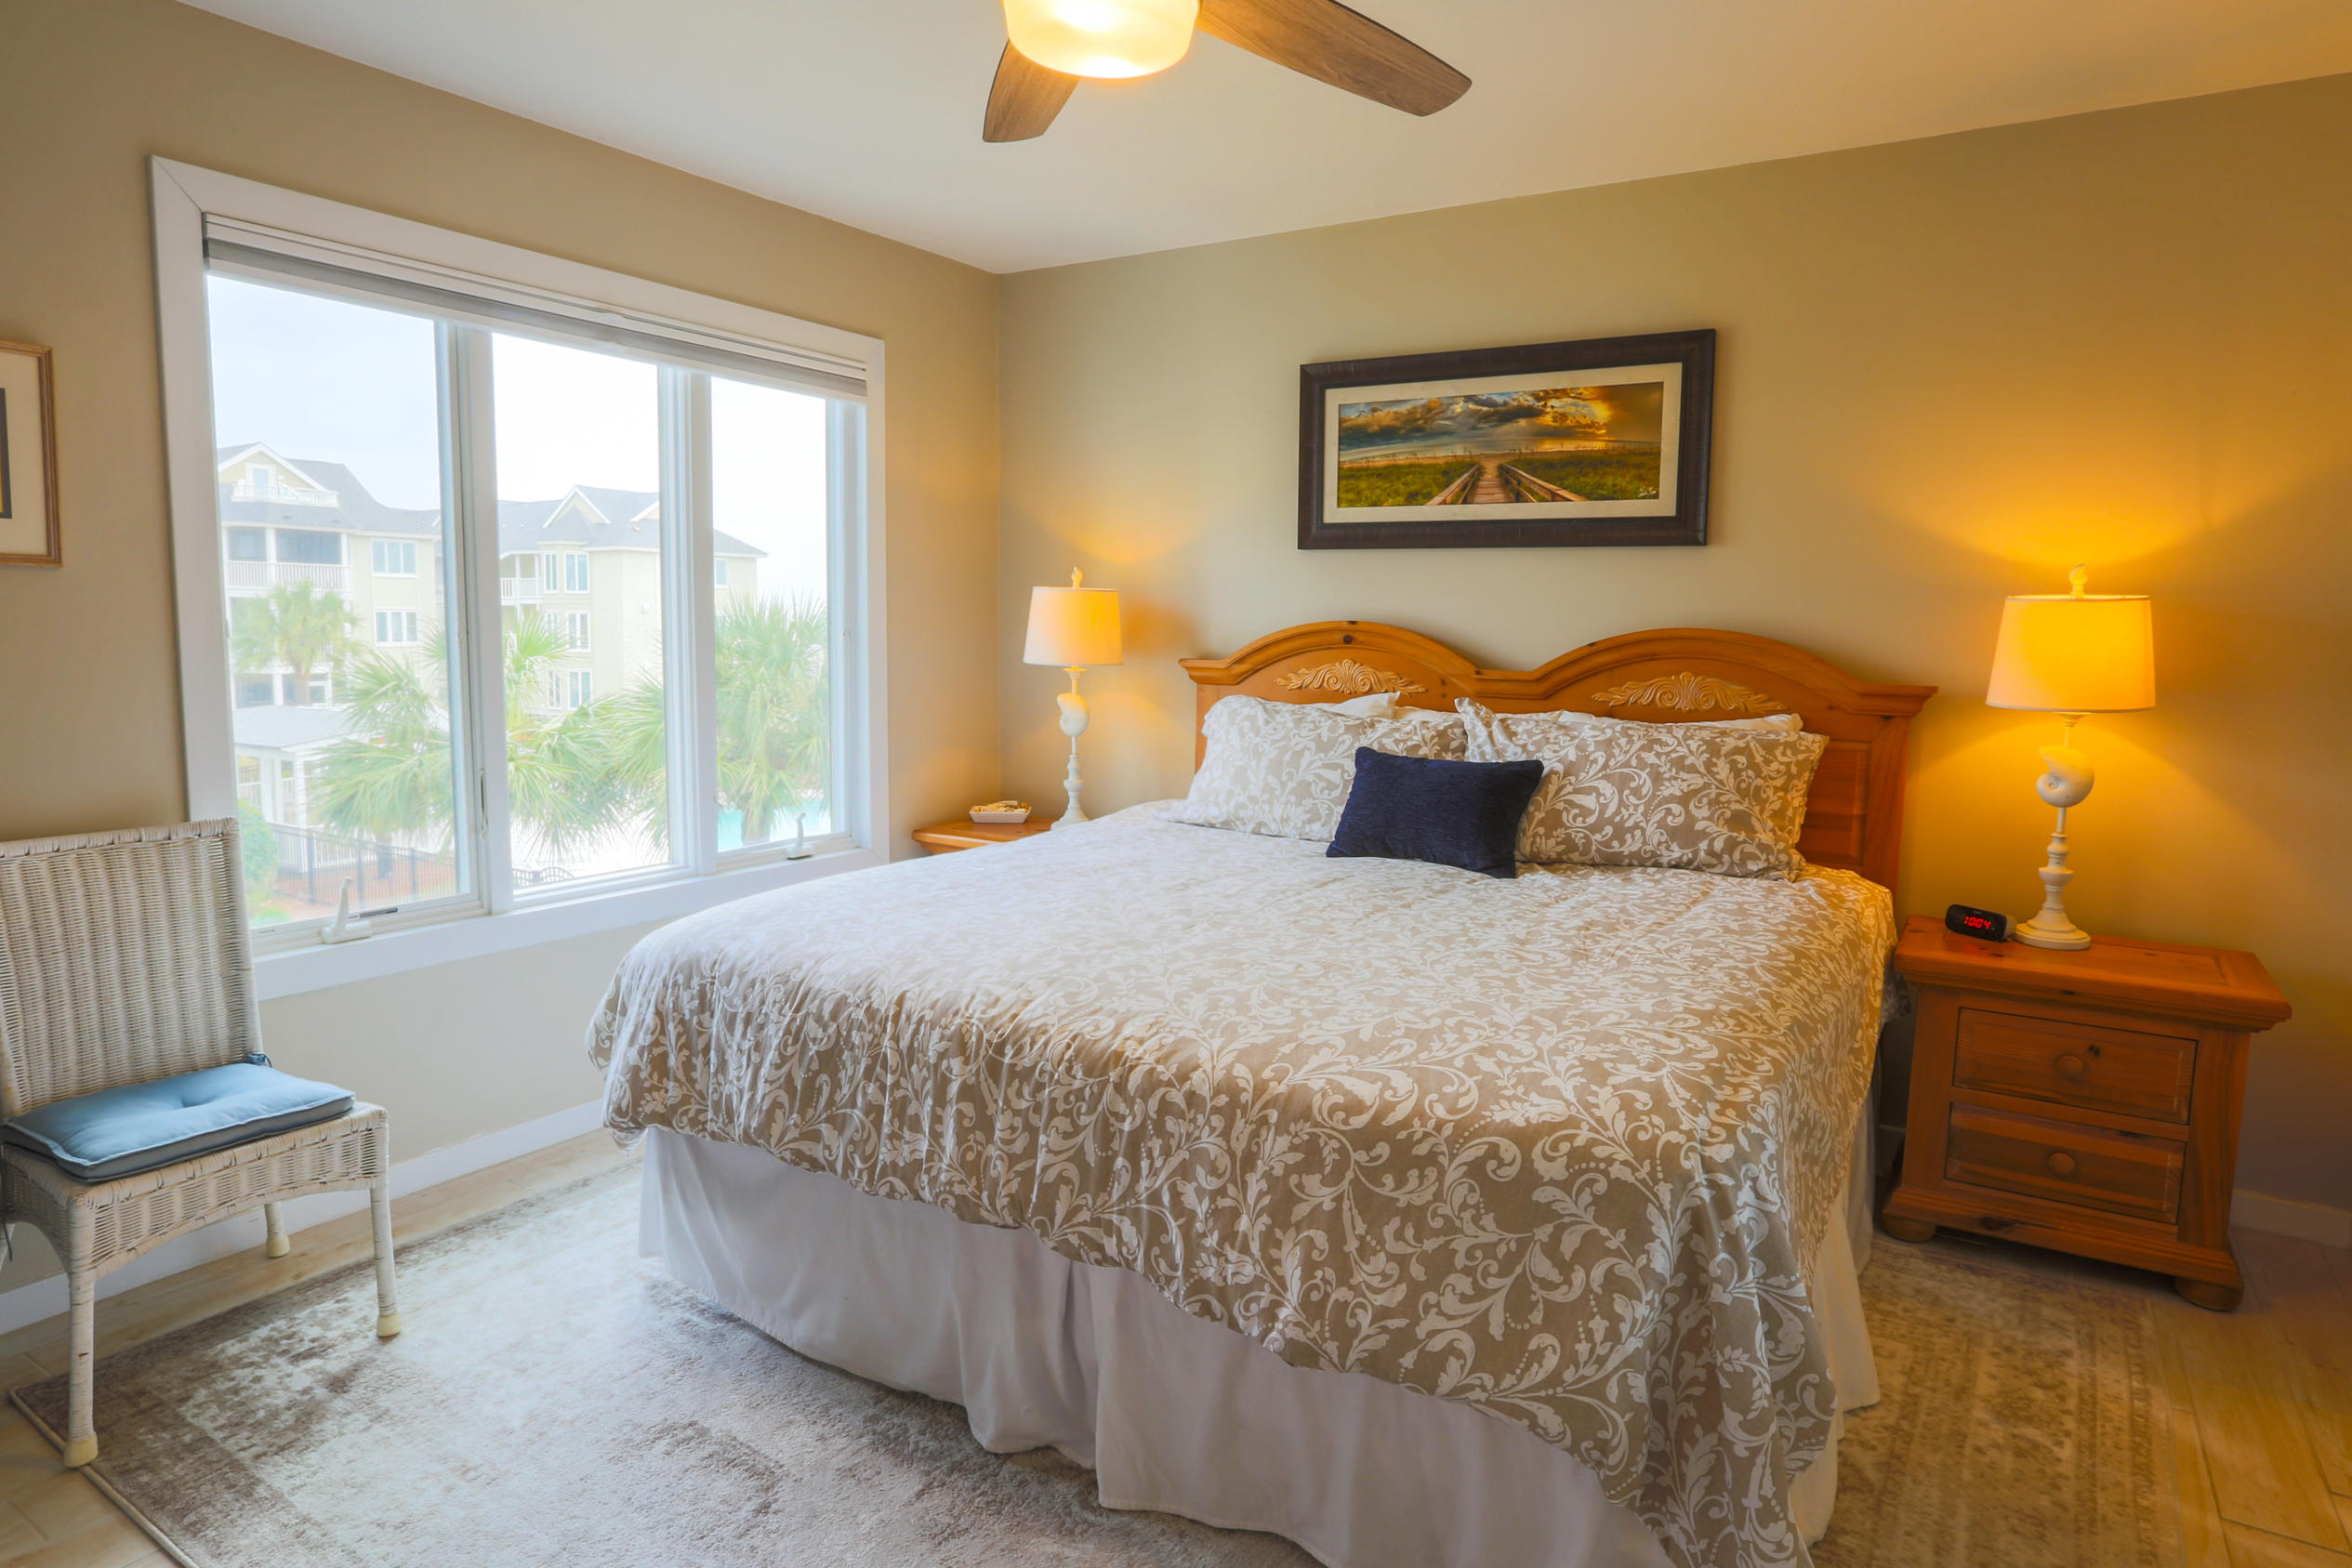 Wild Dunes Homes For Sale - 204-I Tidewater, Isle of Palms, SC - 1